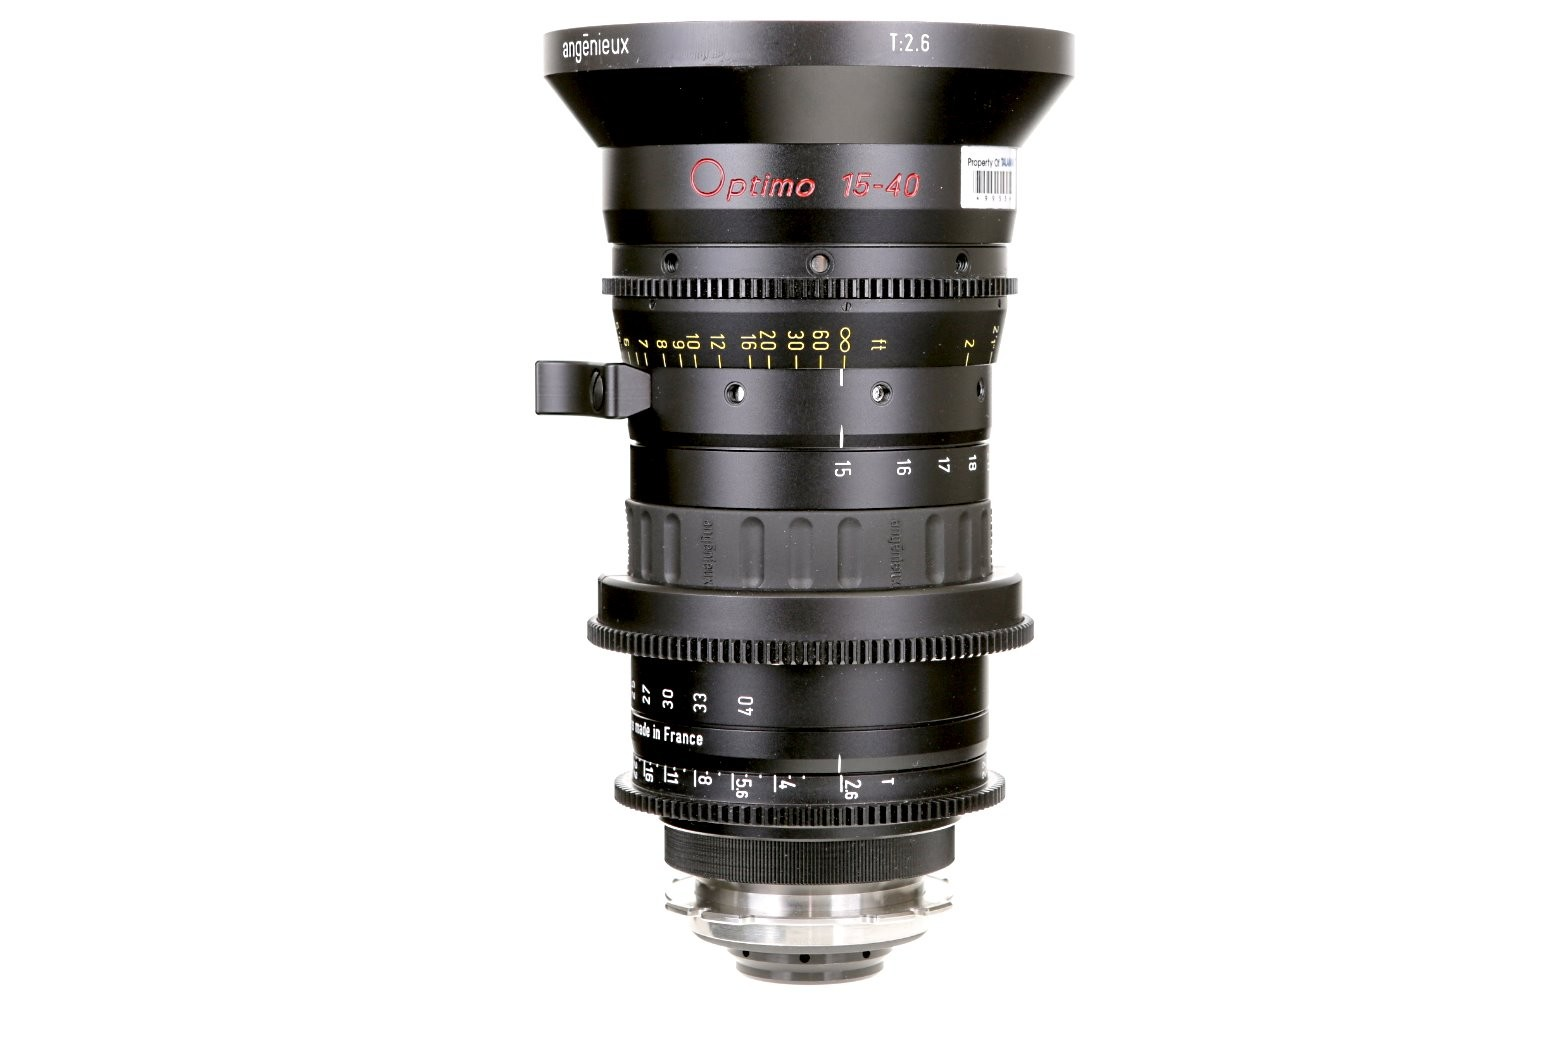 ZOOM ANGENIEUX OPTIMO 15-40 mm T 2.6